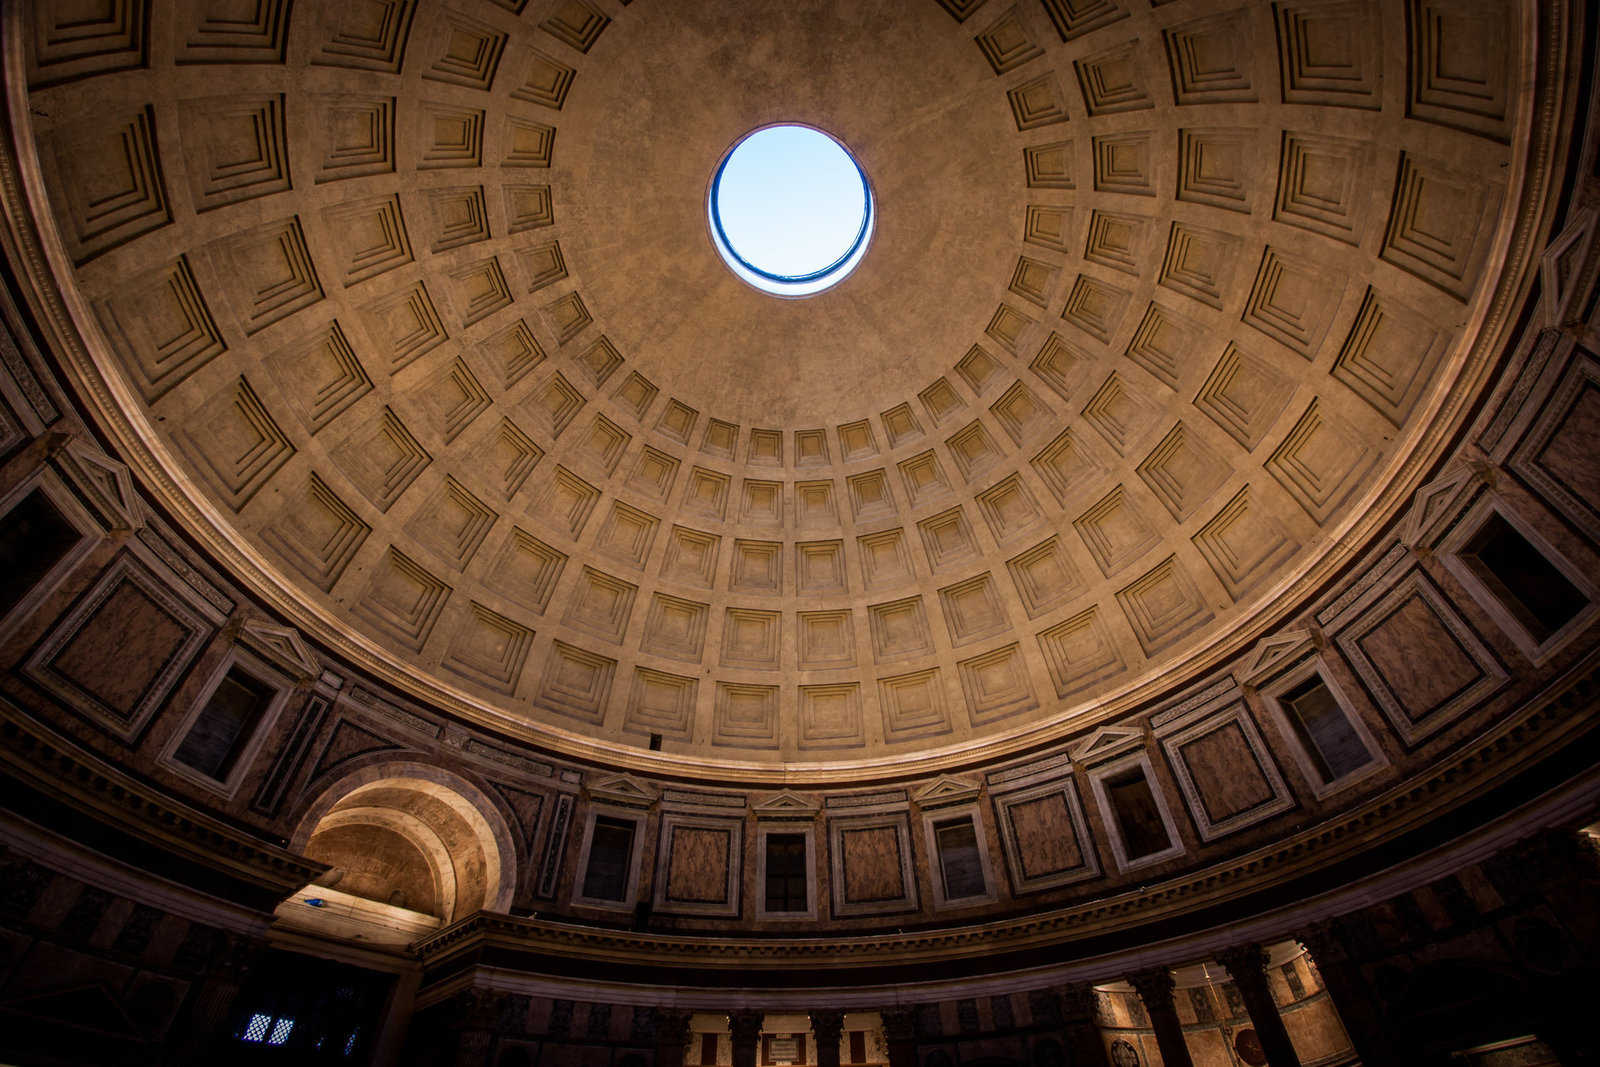 The Pantheon Rome 126 Ad Monolithic Dome Institute